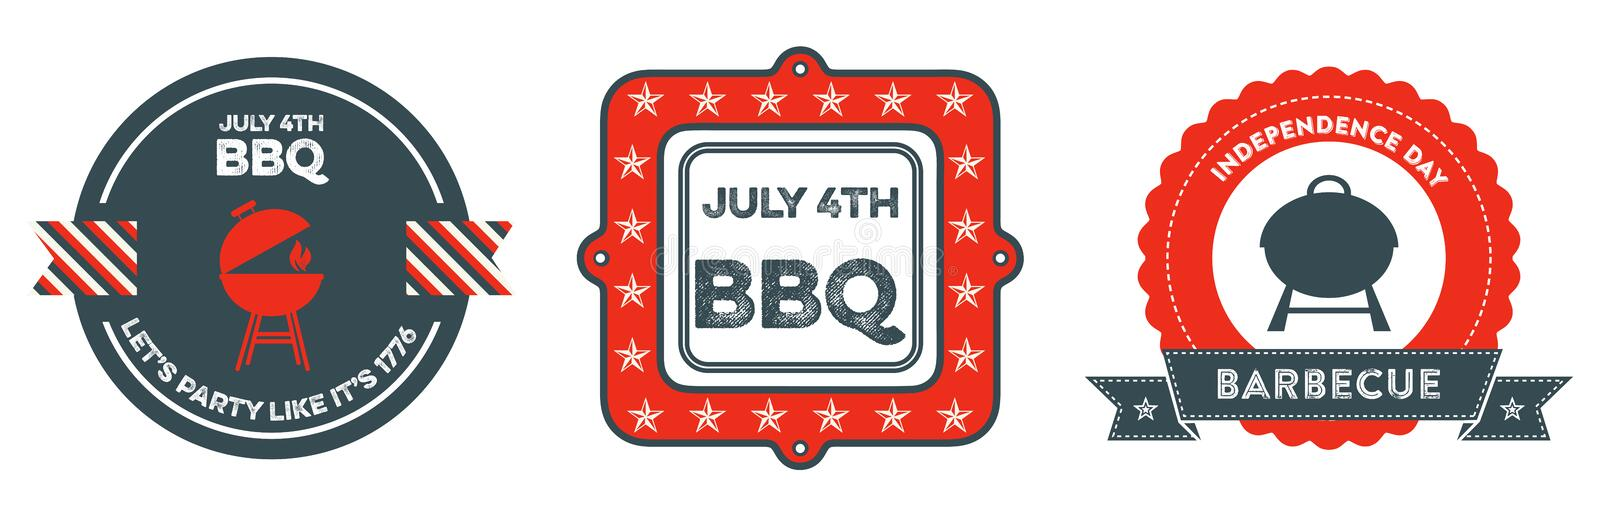 4th of July BBQ badges. USA Patriotic Independence Day badges with vintage style. They read July 4th BBQ - Let's party like it's 1776 and Independence Day royalty free illustration